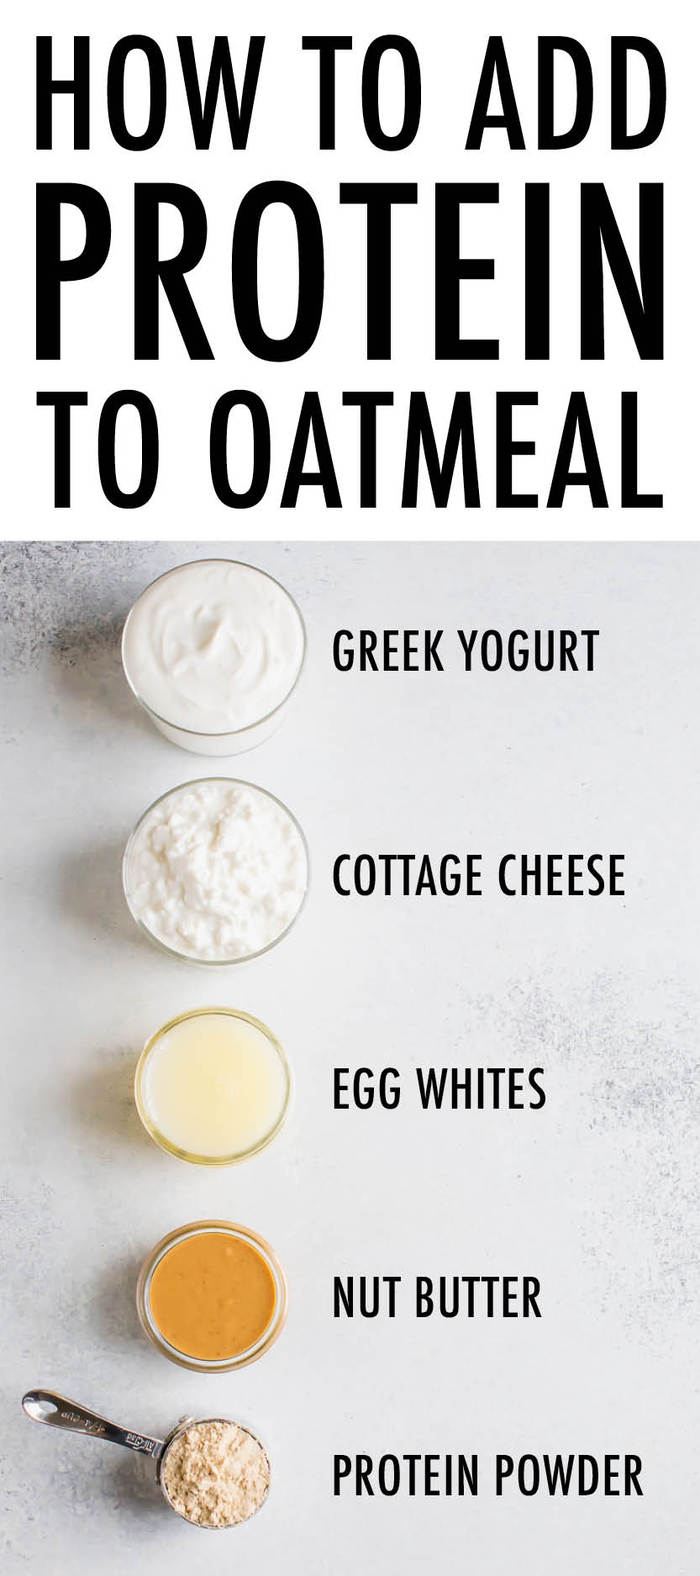 5 ingredients to add protein to oatmeal. Ingredients in bowls and spoons are greek yogurt, cottage cheese, egg whites, nut butter and protein powder.